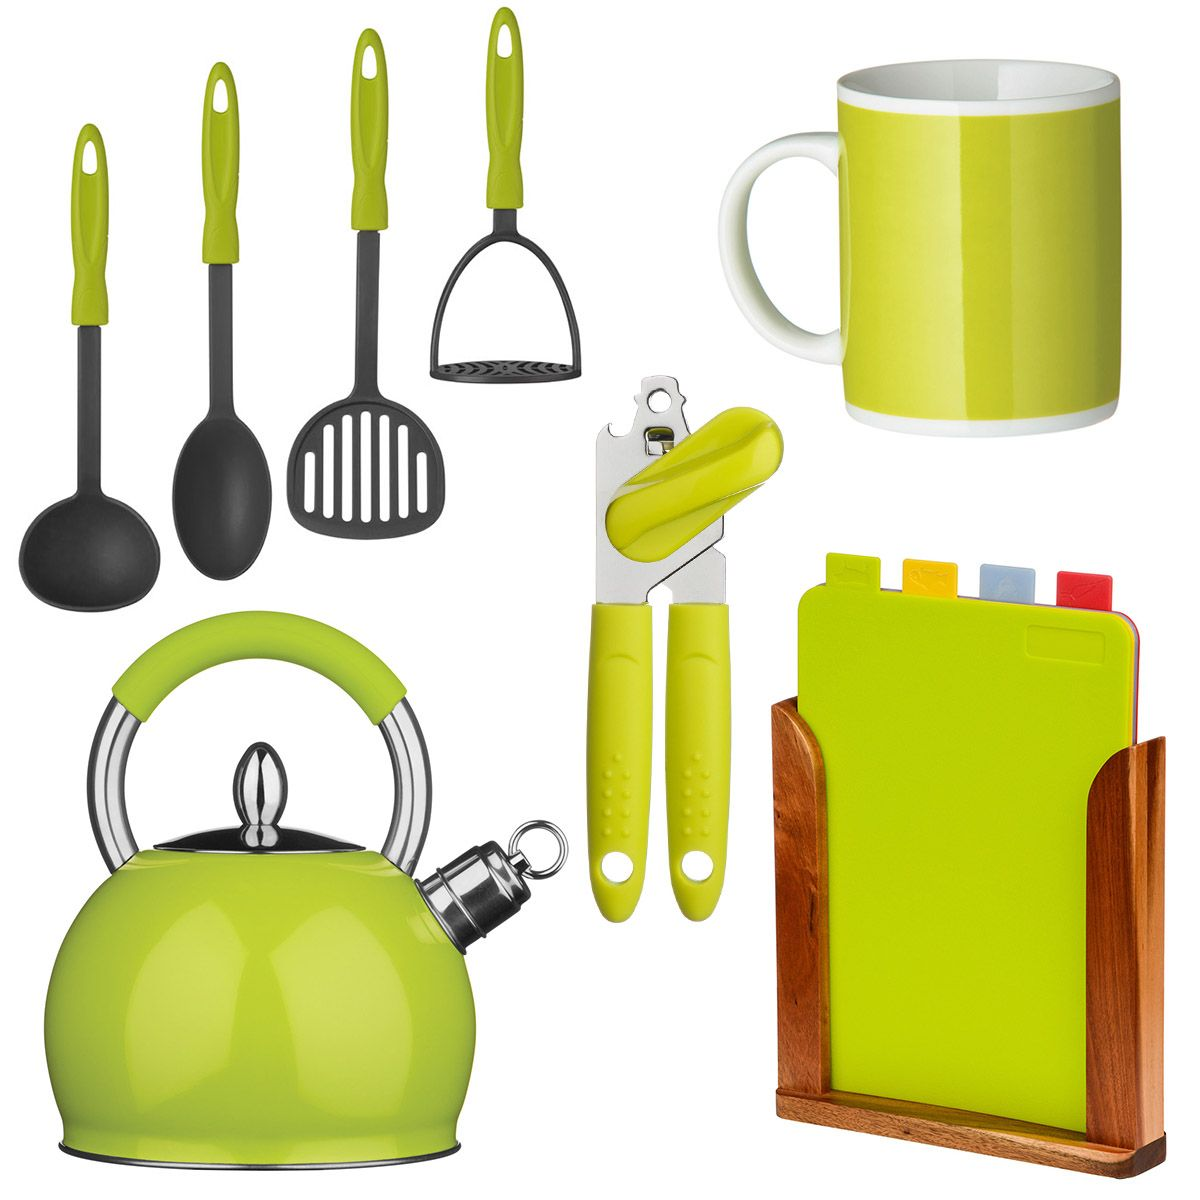 Lime Green And Black Kitchen Accessories: Lime Green Kitchen Accessories At ACHICA.com